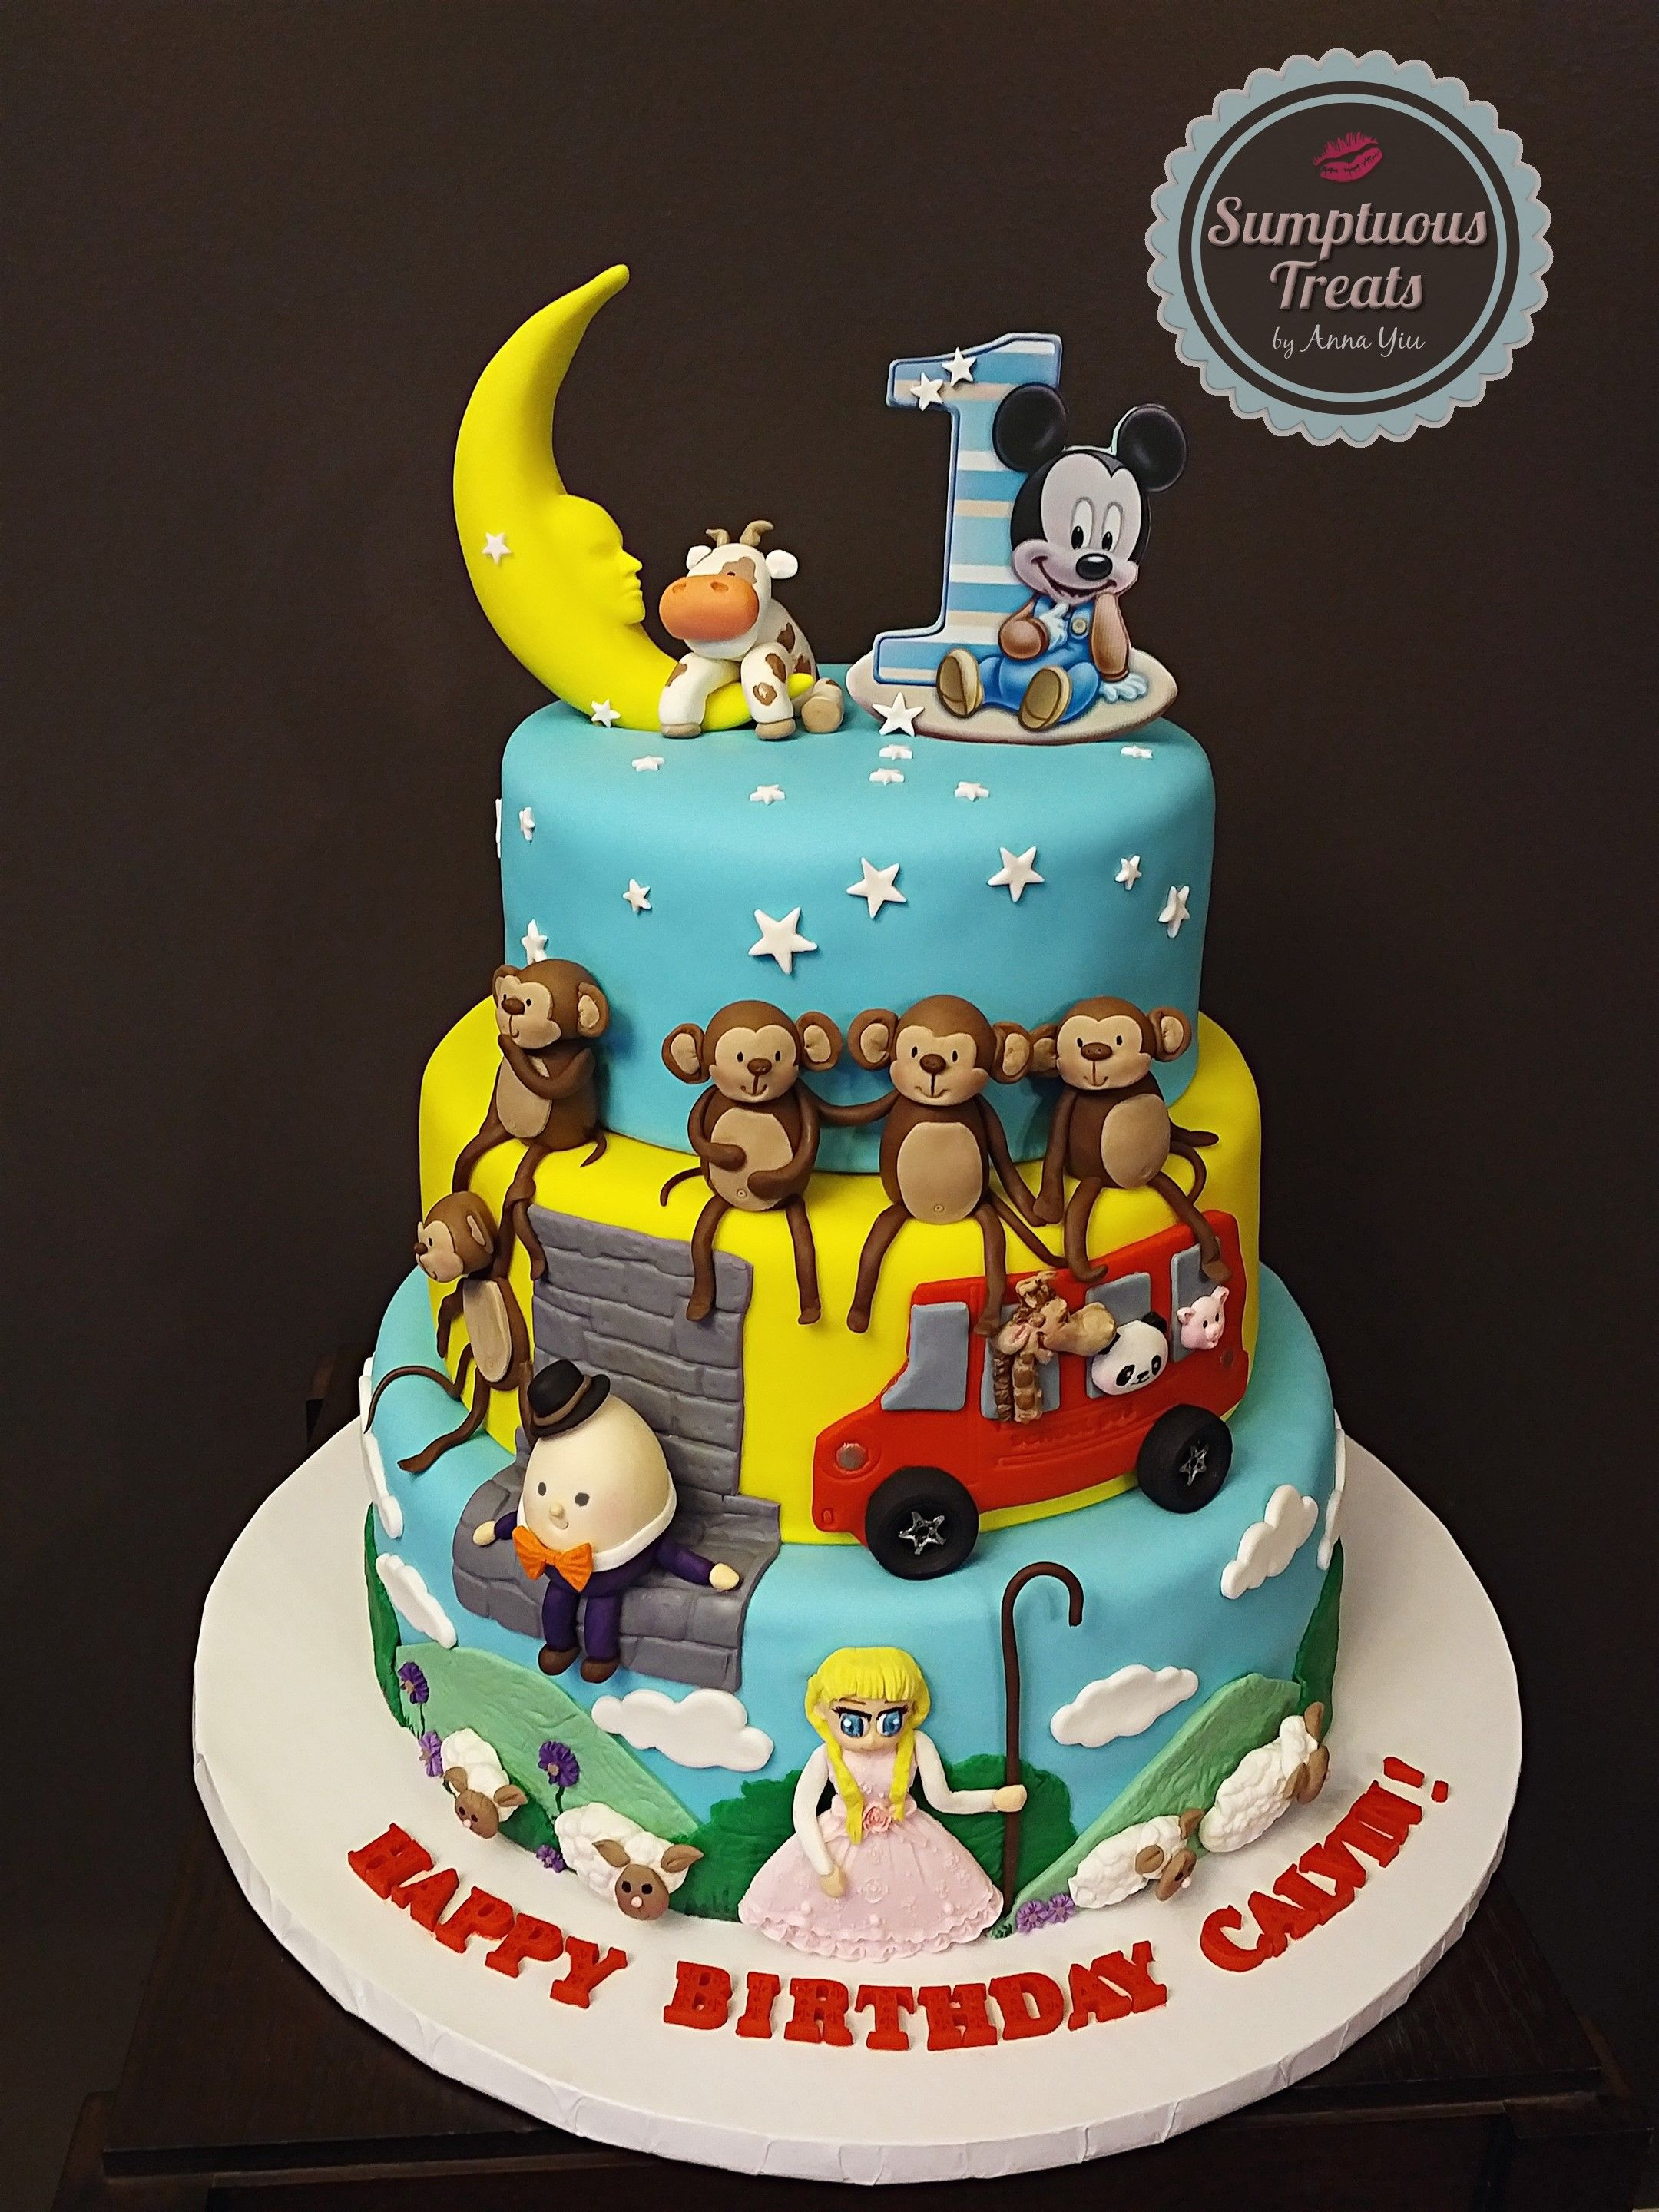 Nursery Rhymes Cake Custom Made To Order Cakes Edible Art Sumptuoustreats 5littlemonkeys Humptydumpty Littlebopeep Cowjumpedoverthemoon